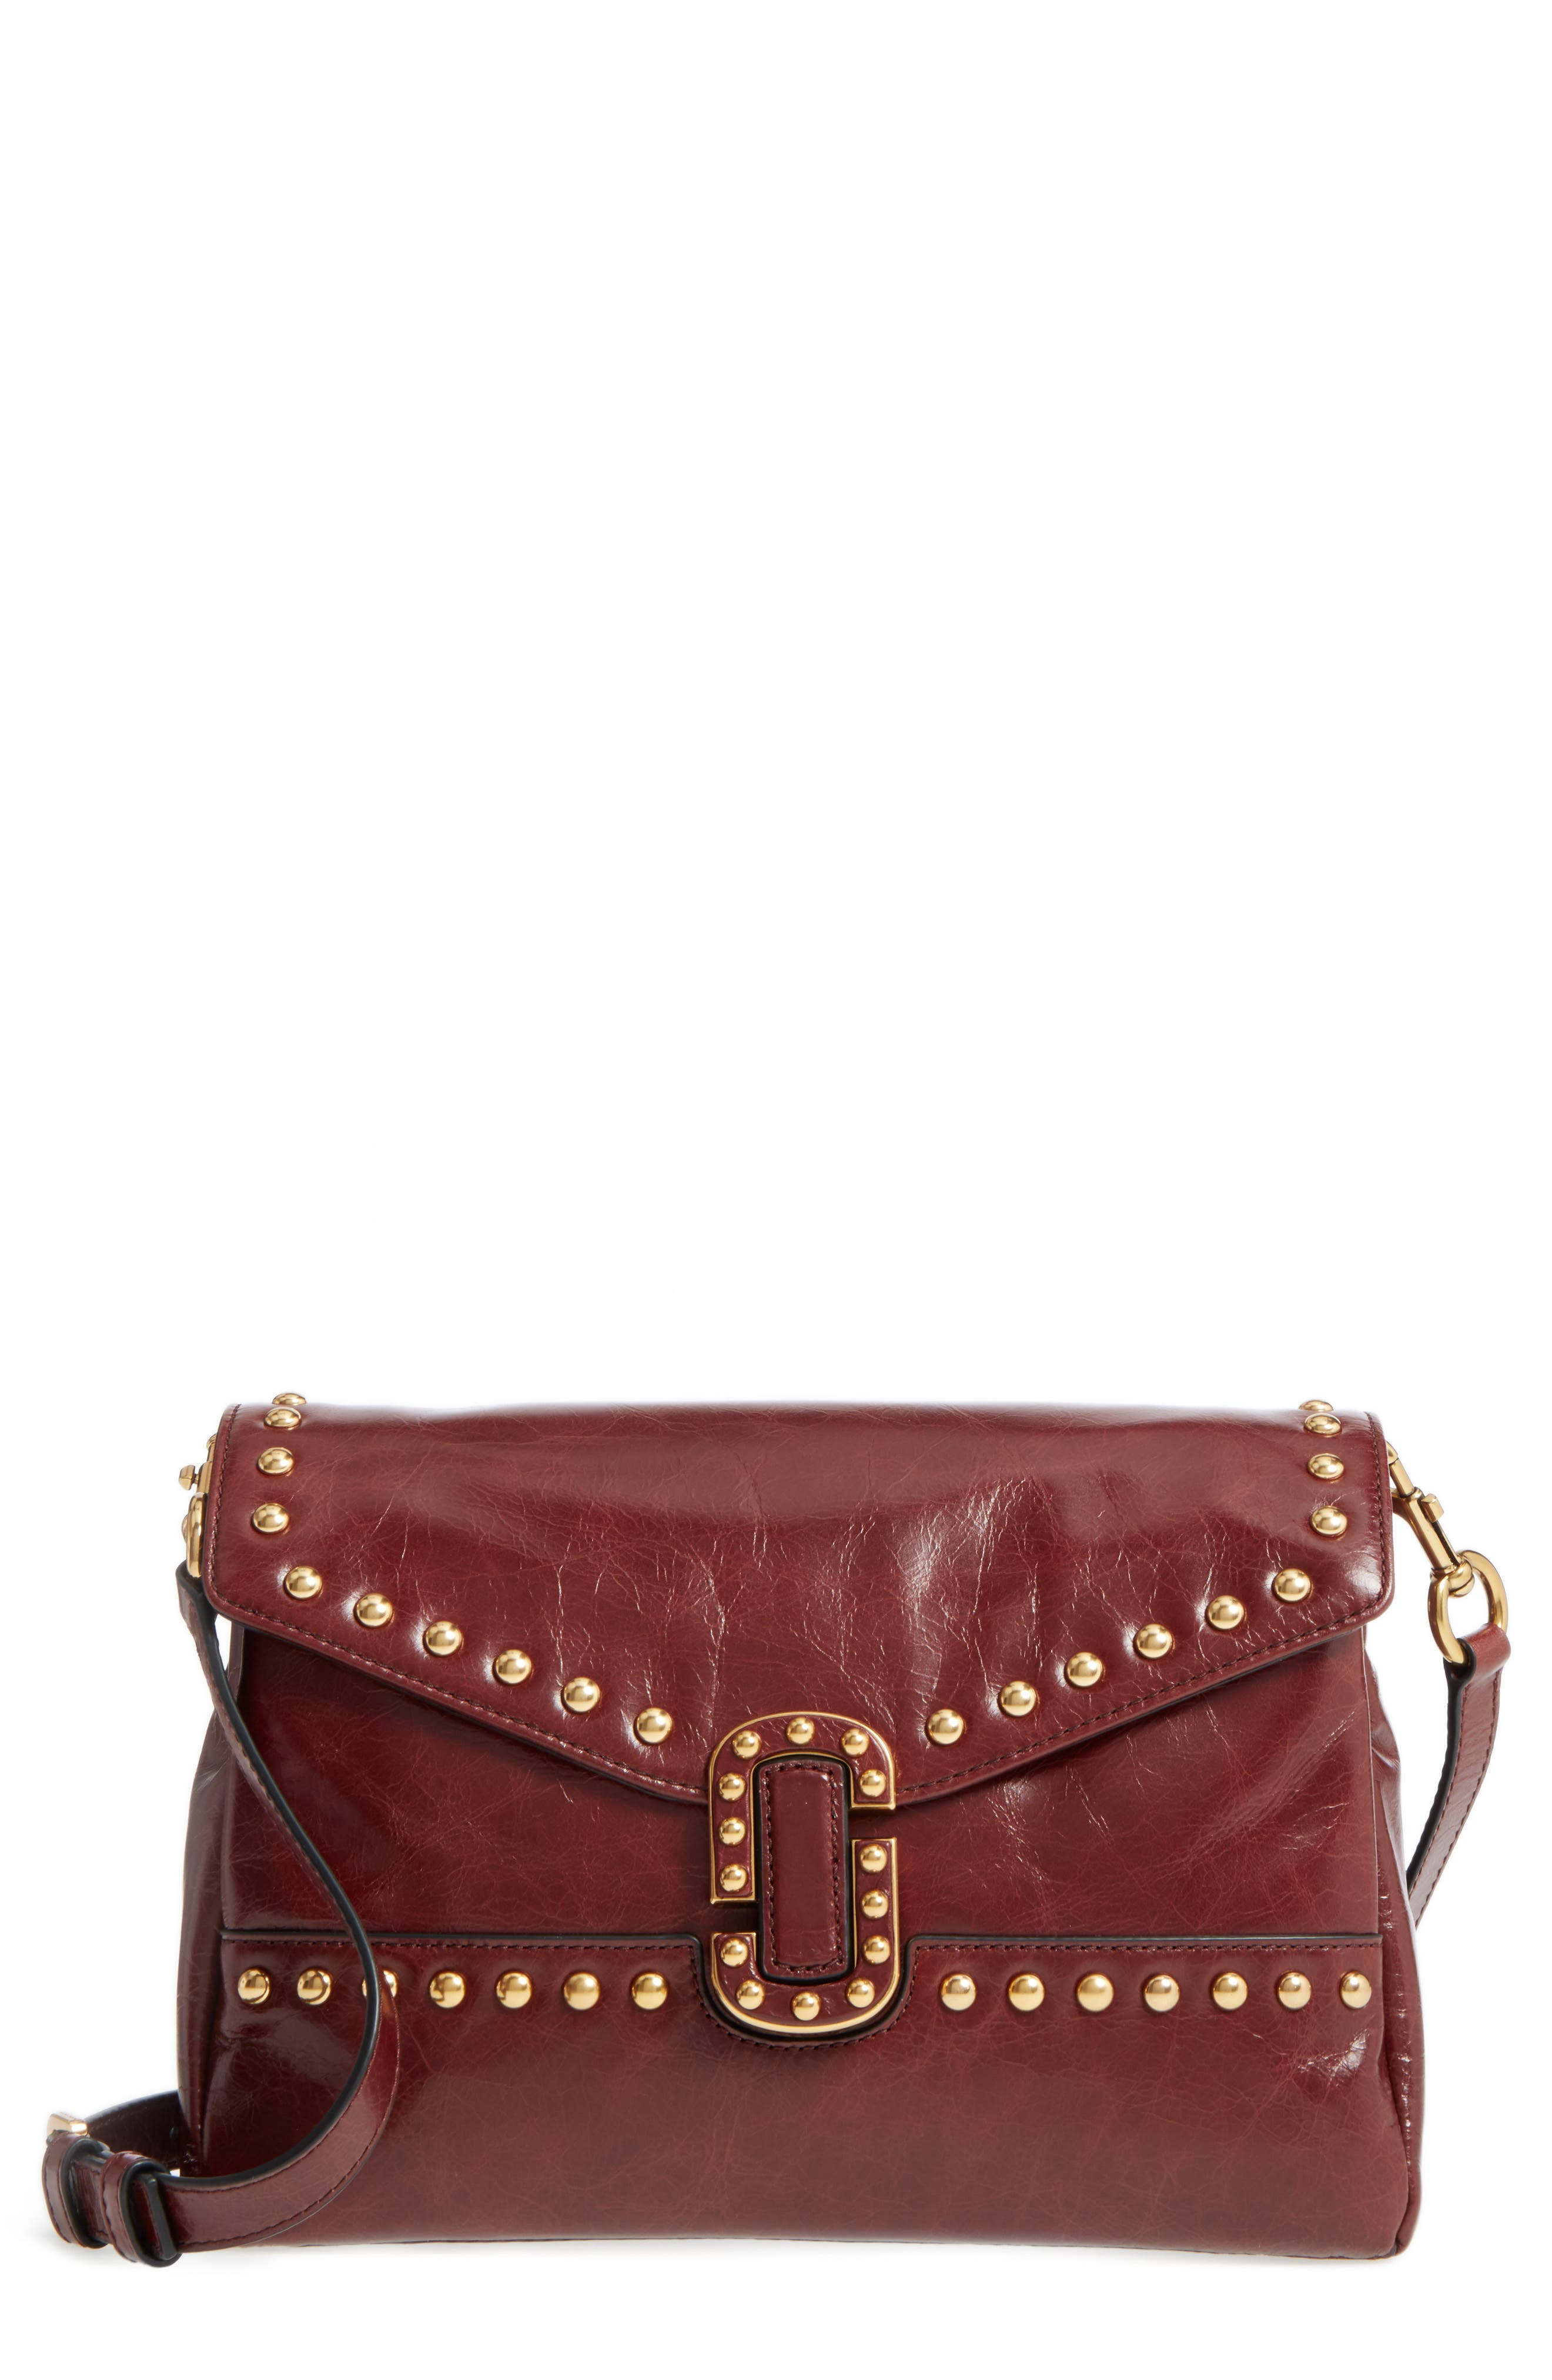 Main Image - MARC JACOBS Small Studded Leather Envelope Bag